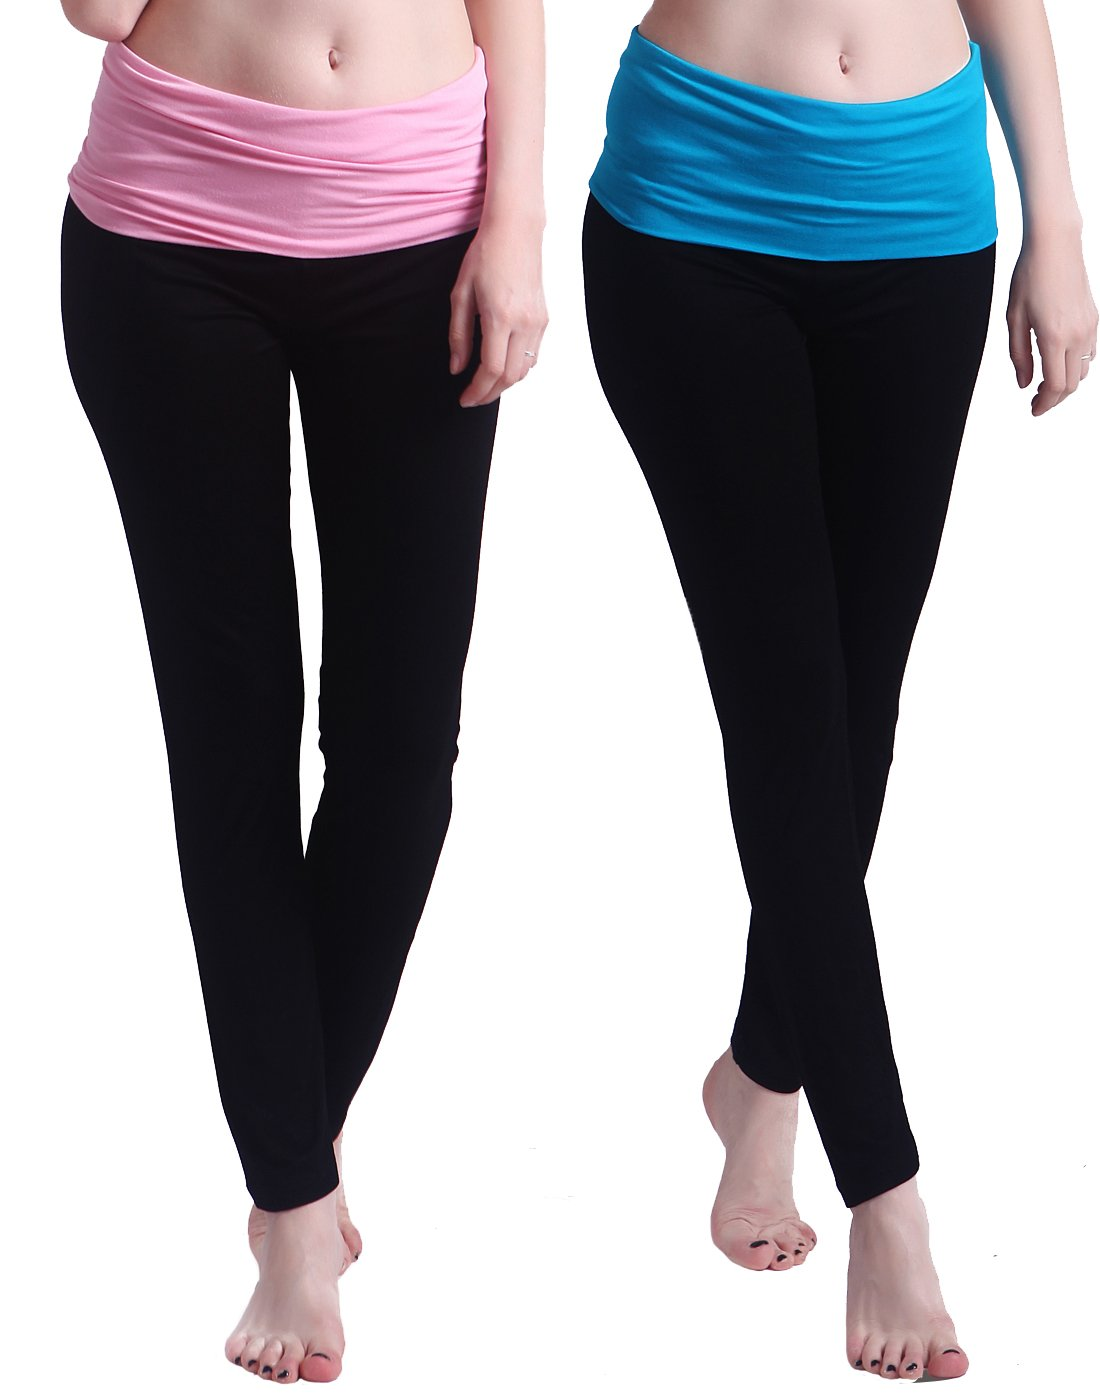 HDE 2-Pack Women's Maternity Yoga Stretch Pants Fit & Flare Foldover Pregnancy Leggings (Black With Pink & Blue Waist Band)